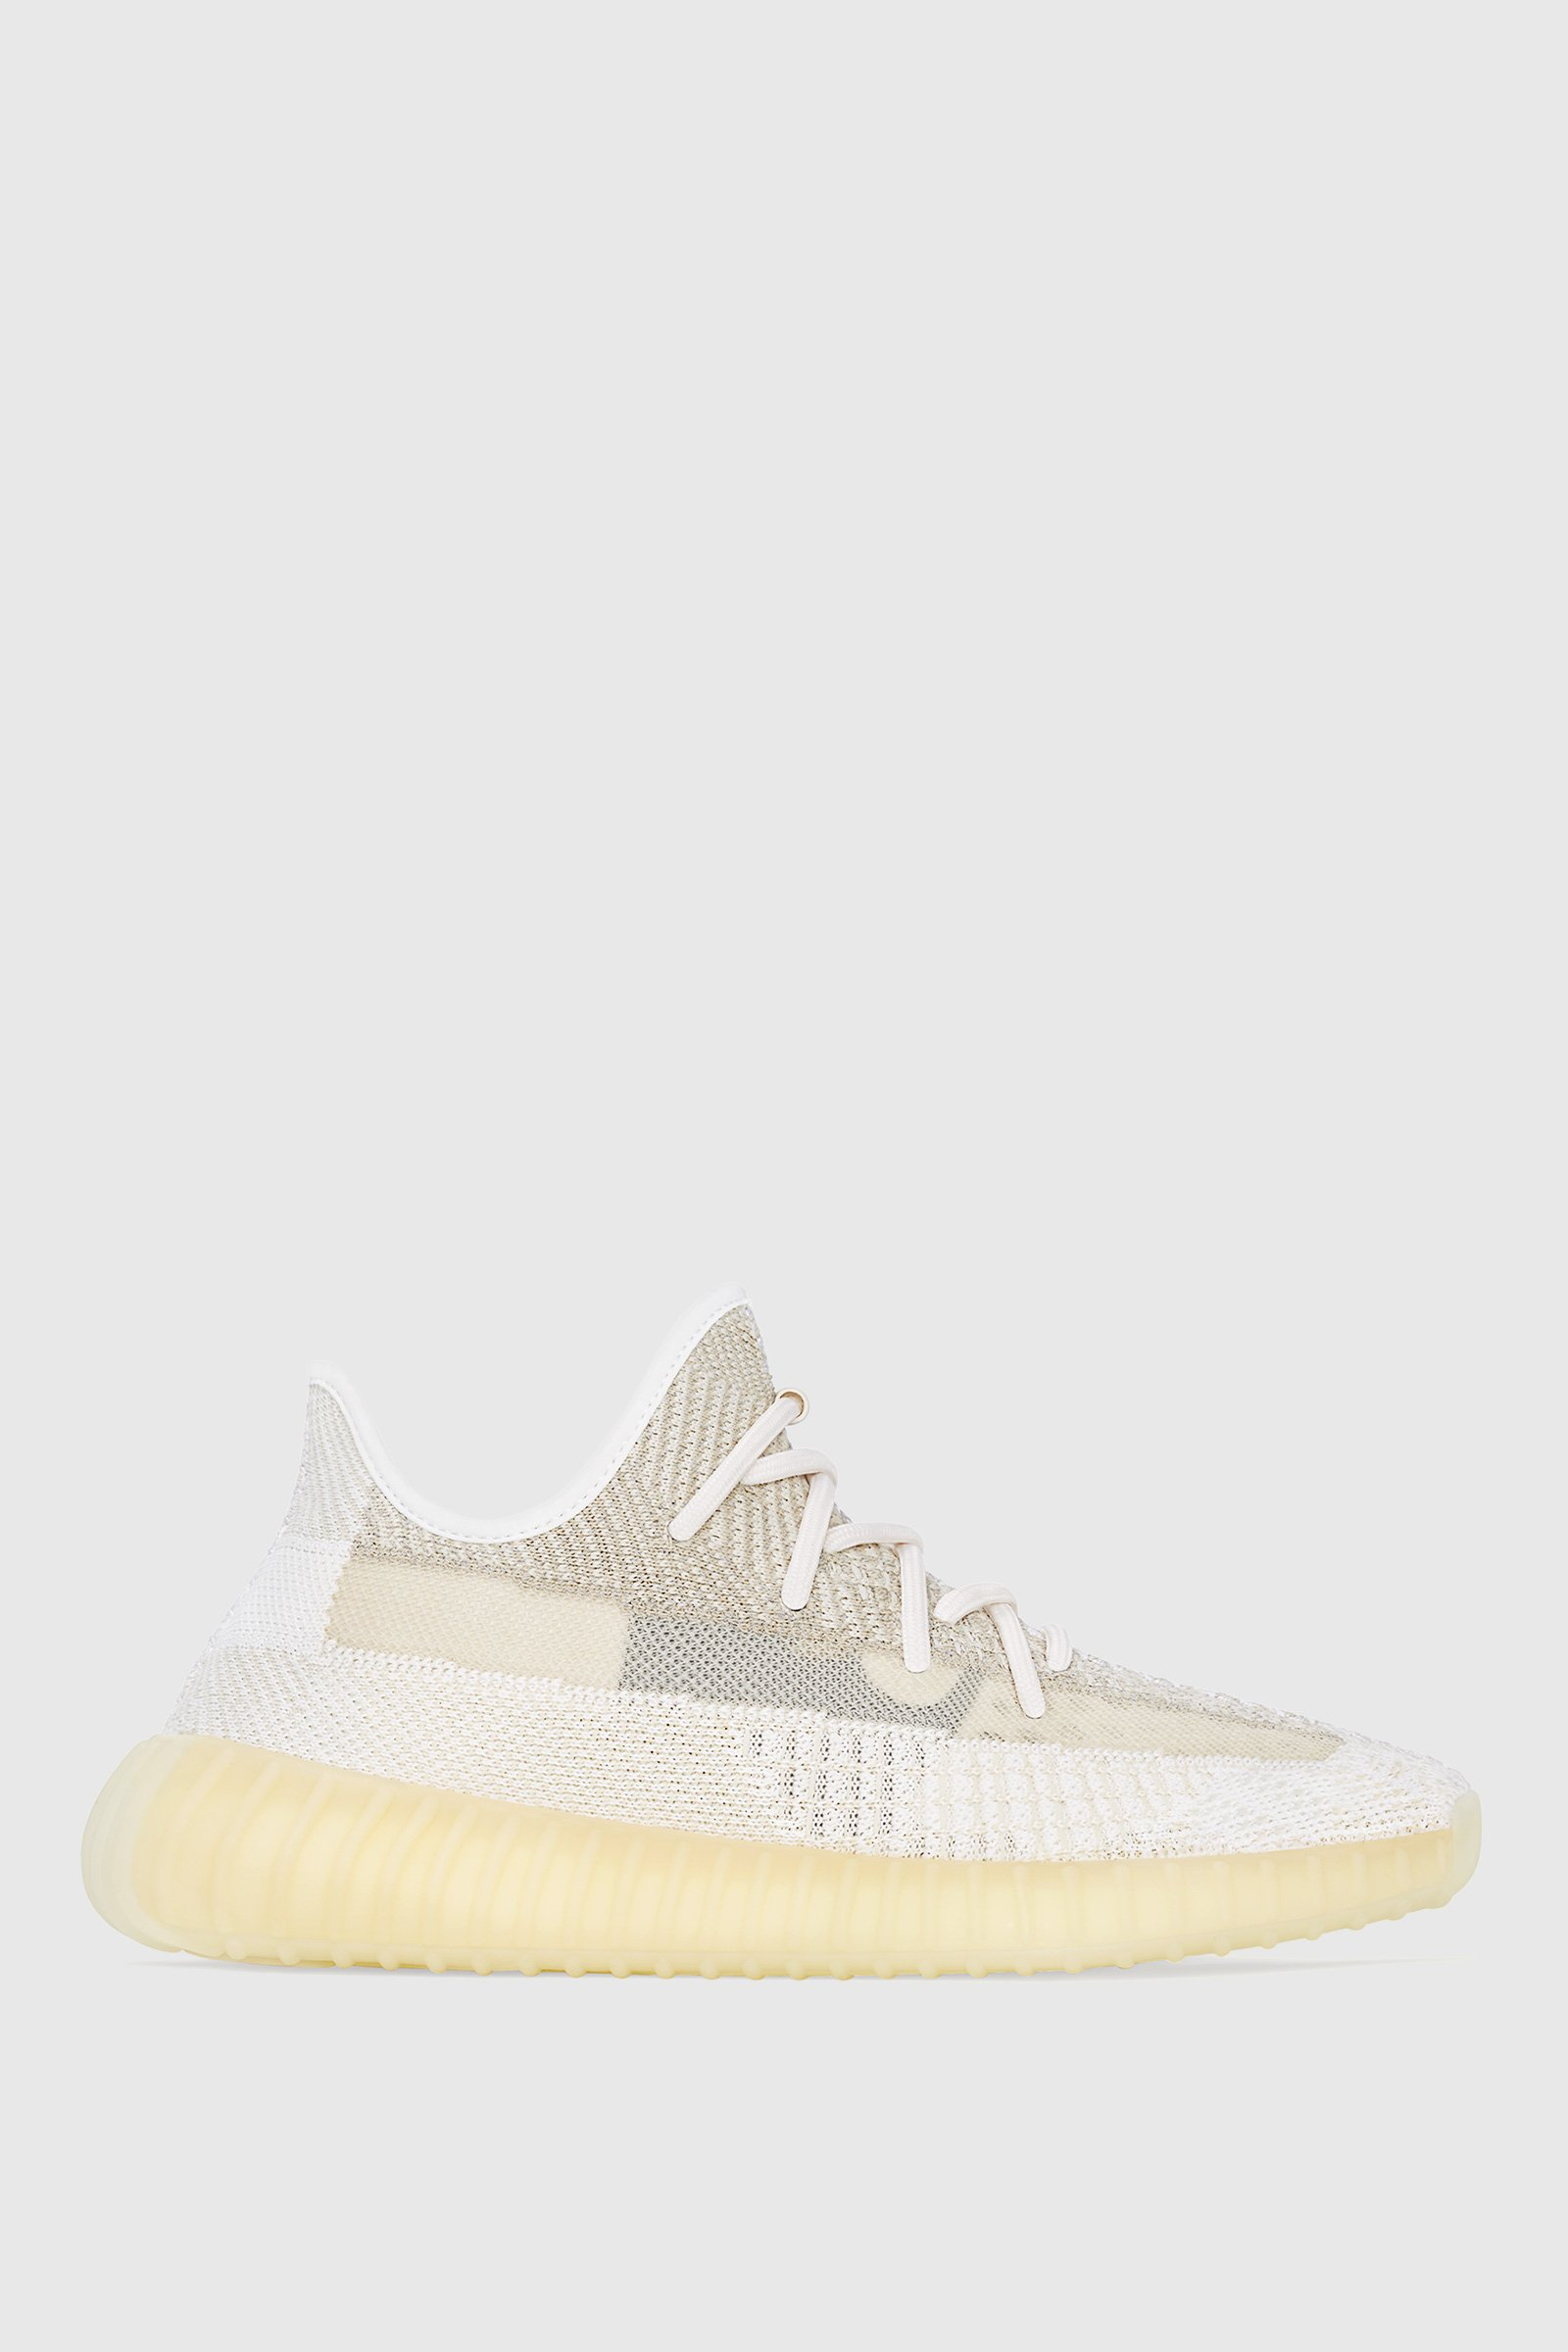 Wood Wood - Yeezy Boost 350 v2 'Natural'